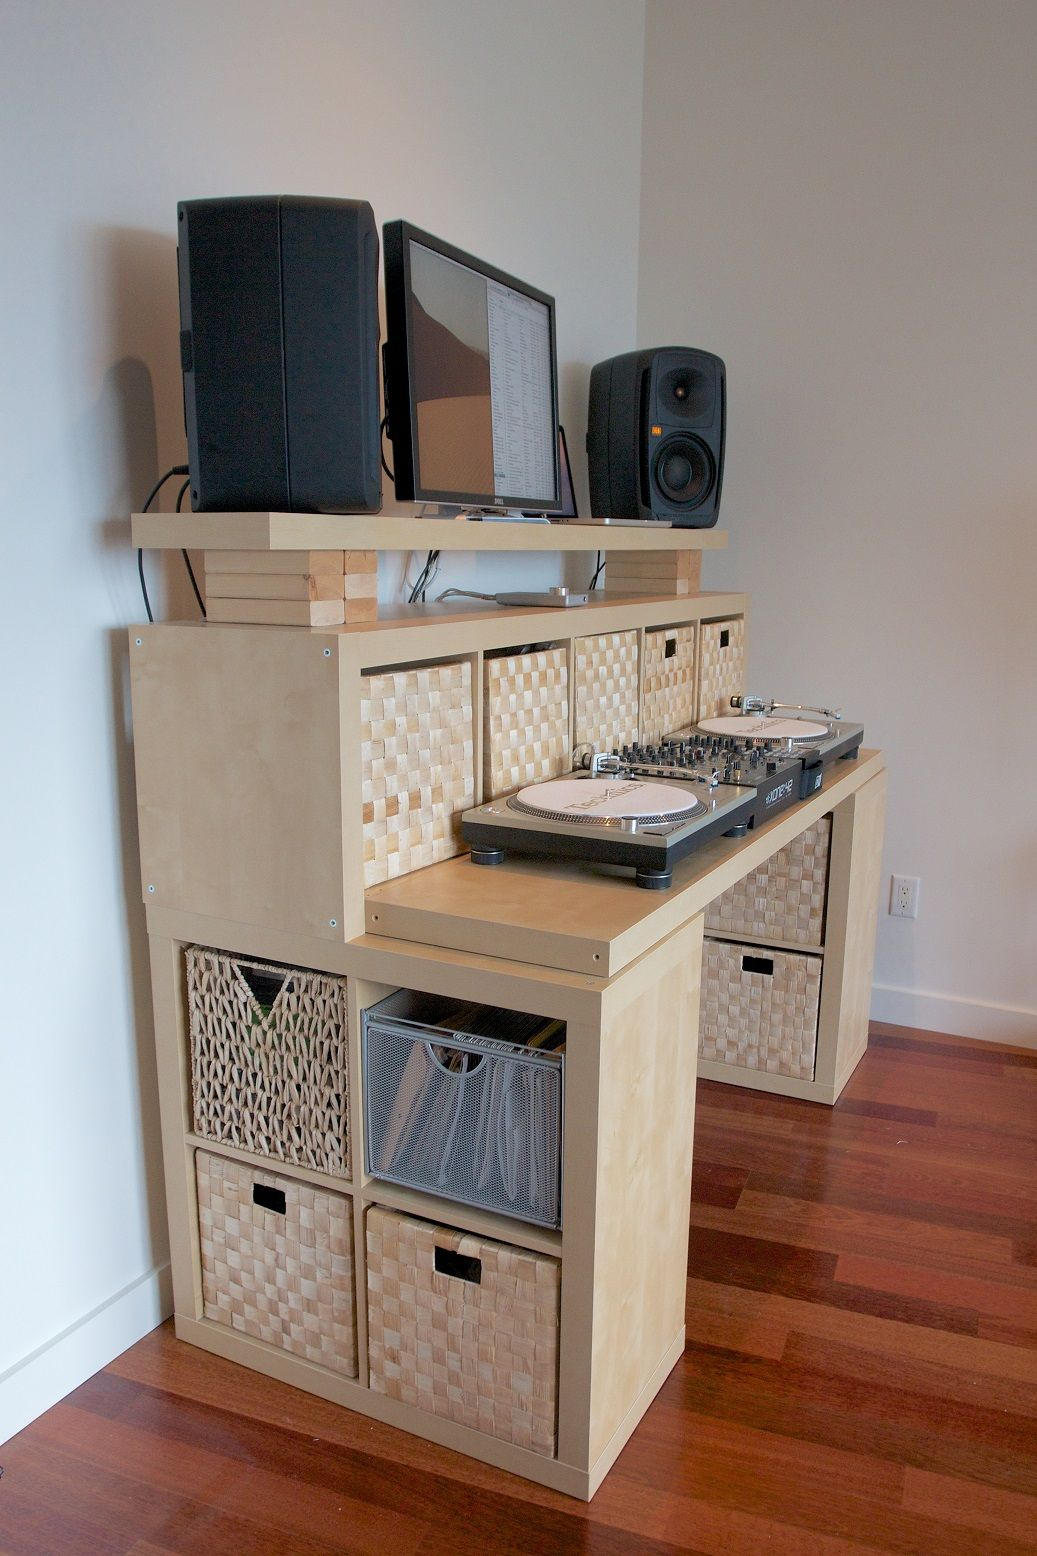 Big Standing Desk Cool Idea Lots Of Storage Ikea Hacks Nel